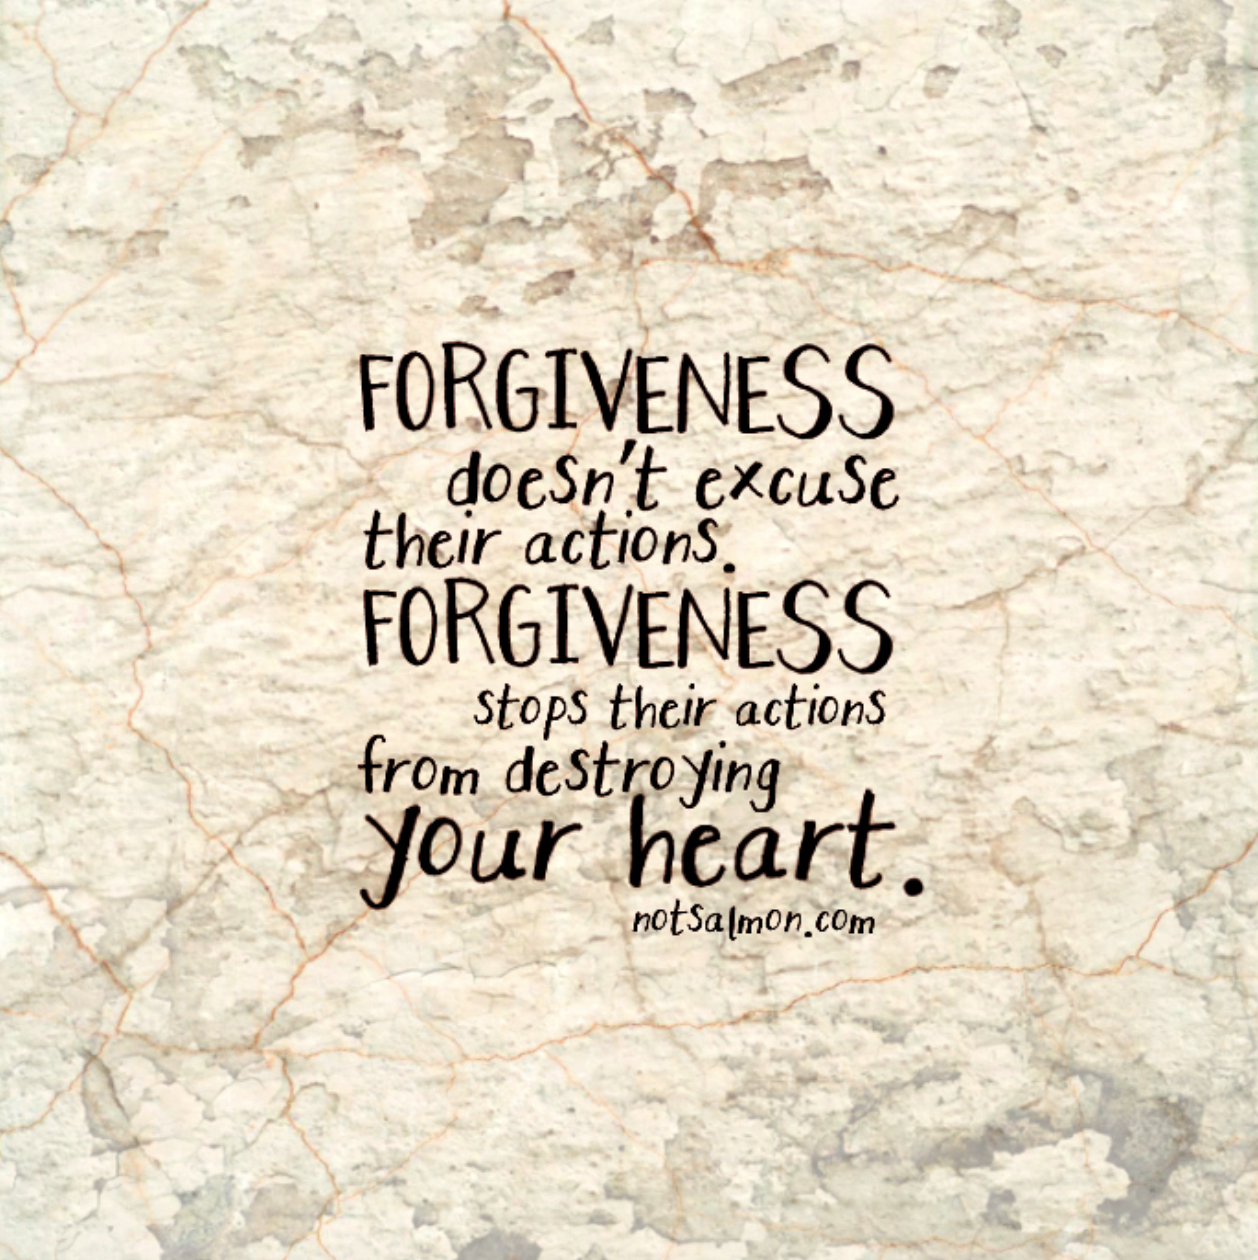 Learn how to #forgive your ex...  #heartbreak #brokenheart #breakup #love #divorce #separated #movingon #lettinggo #quotes #motivation #wisdom #forgive #forgiveness